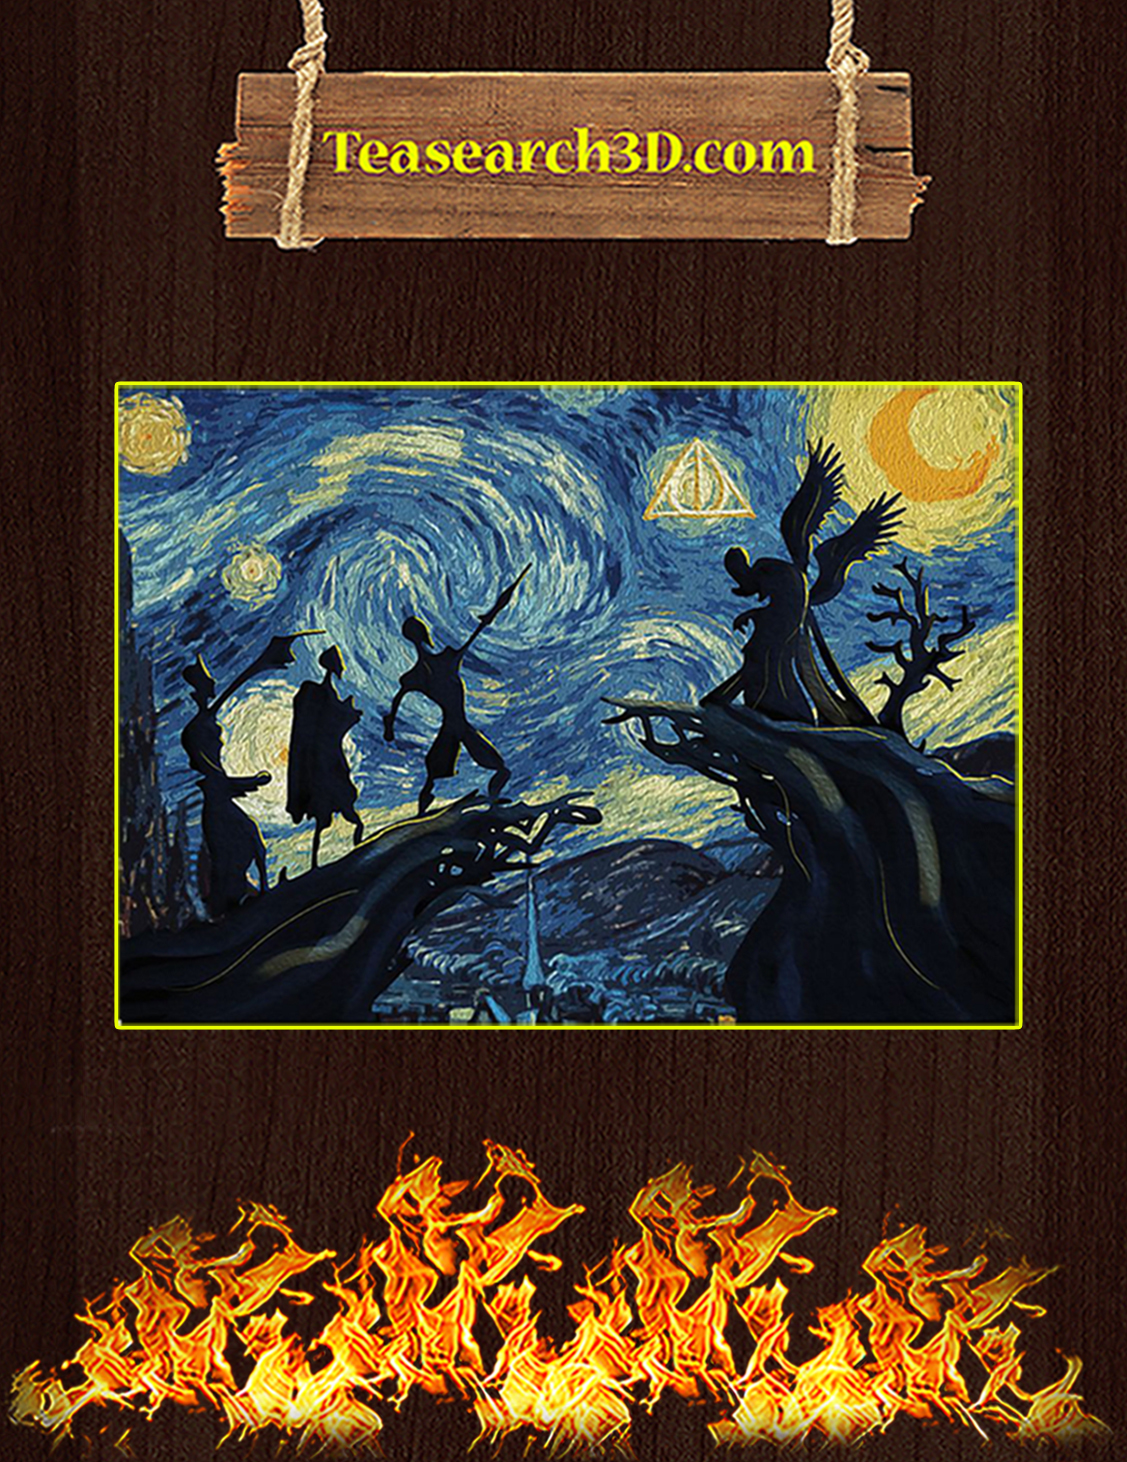 Starry night van gogh deathly hallows harry potter poster A3